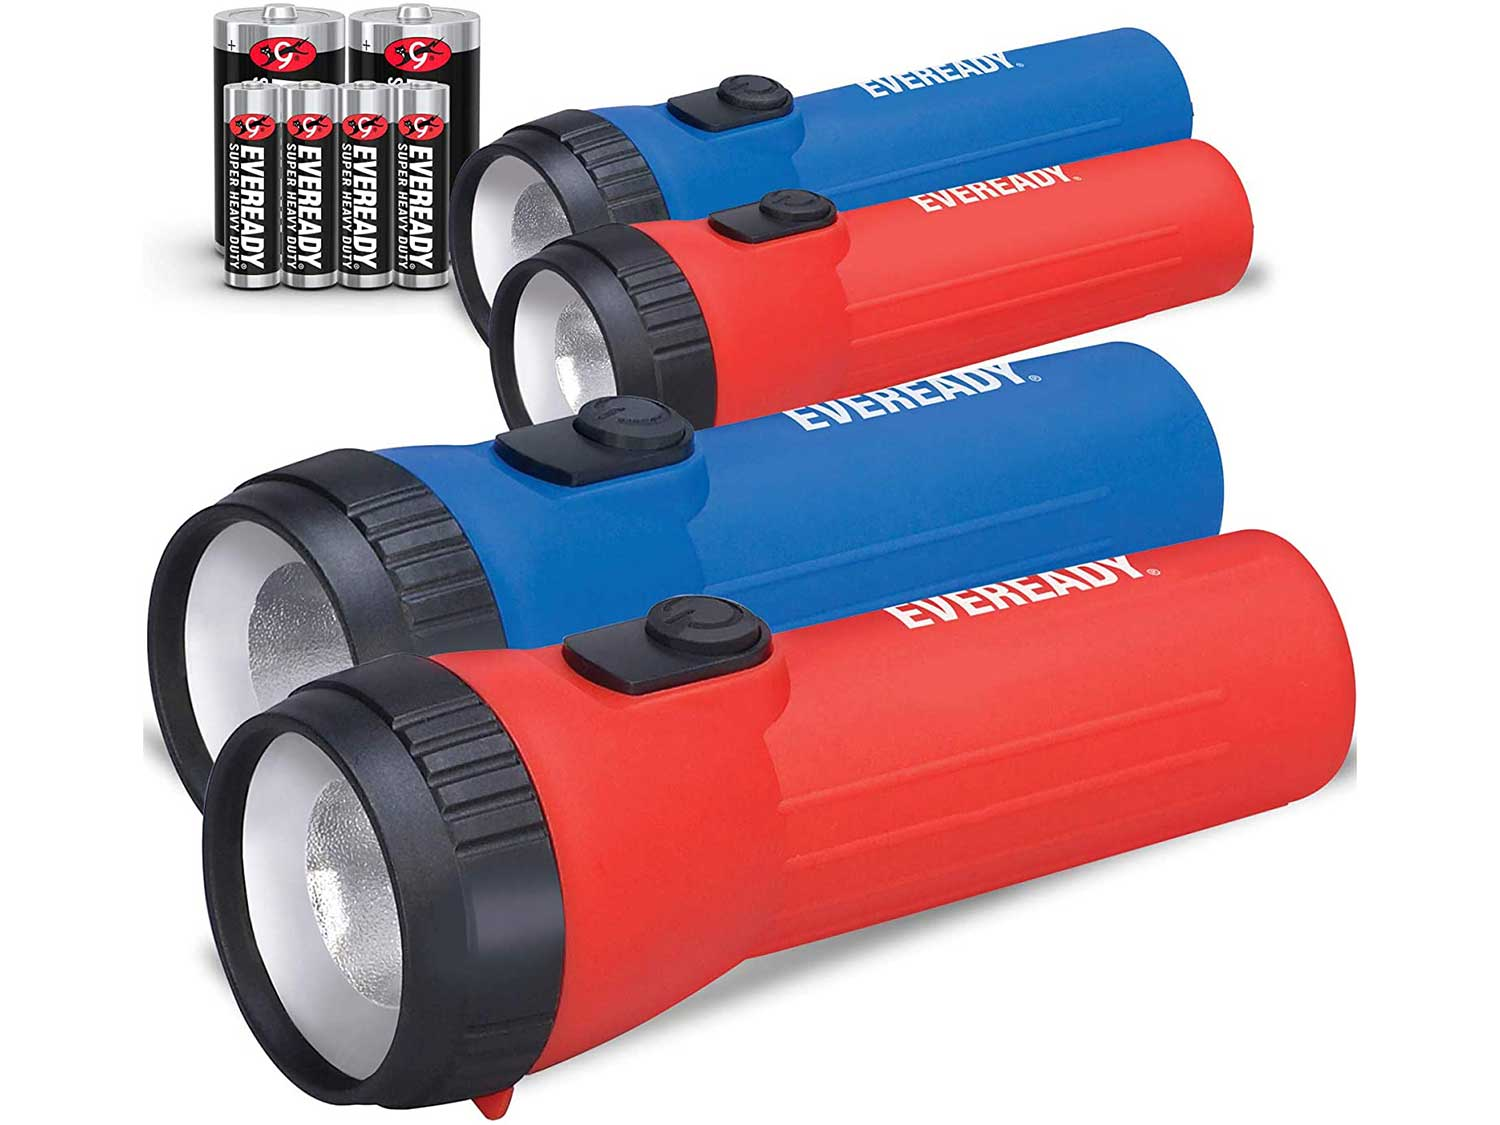 Eveready LED Flashlight Multi-Pack with Batteries, Bright and Durable, Extended Battery Life, Use for Emergencies, Camping, Outdoor, Batteries Included